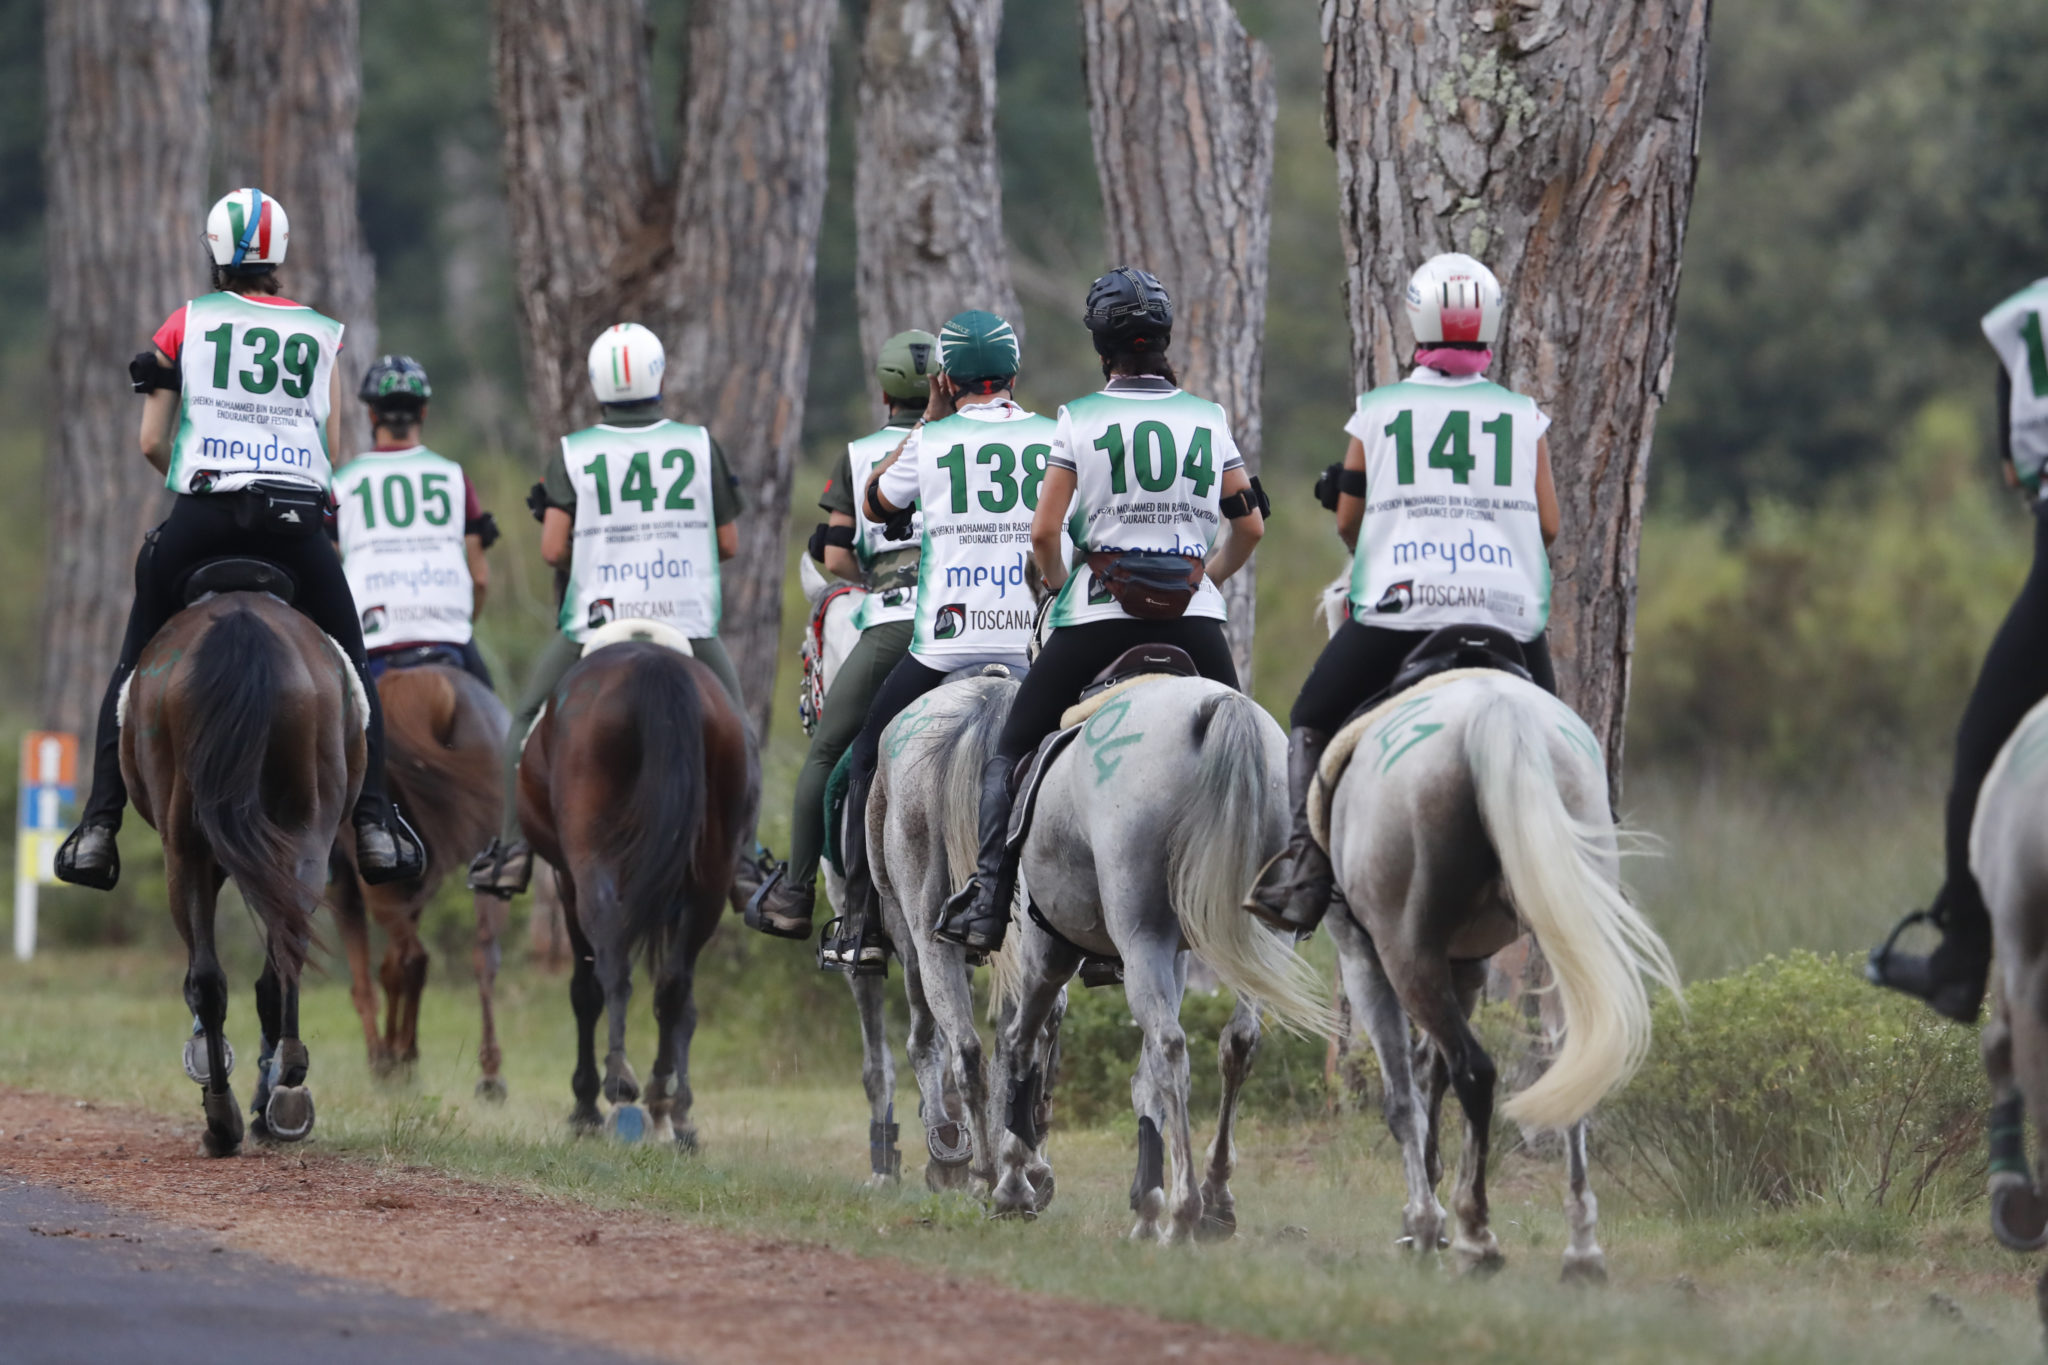 Endurance World Toscana Endurance LIfestyle. Different classes participate.